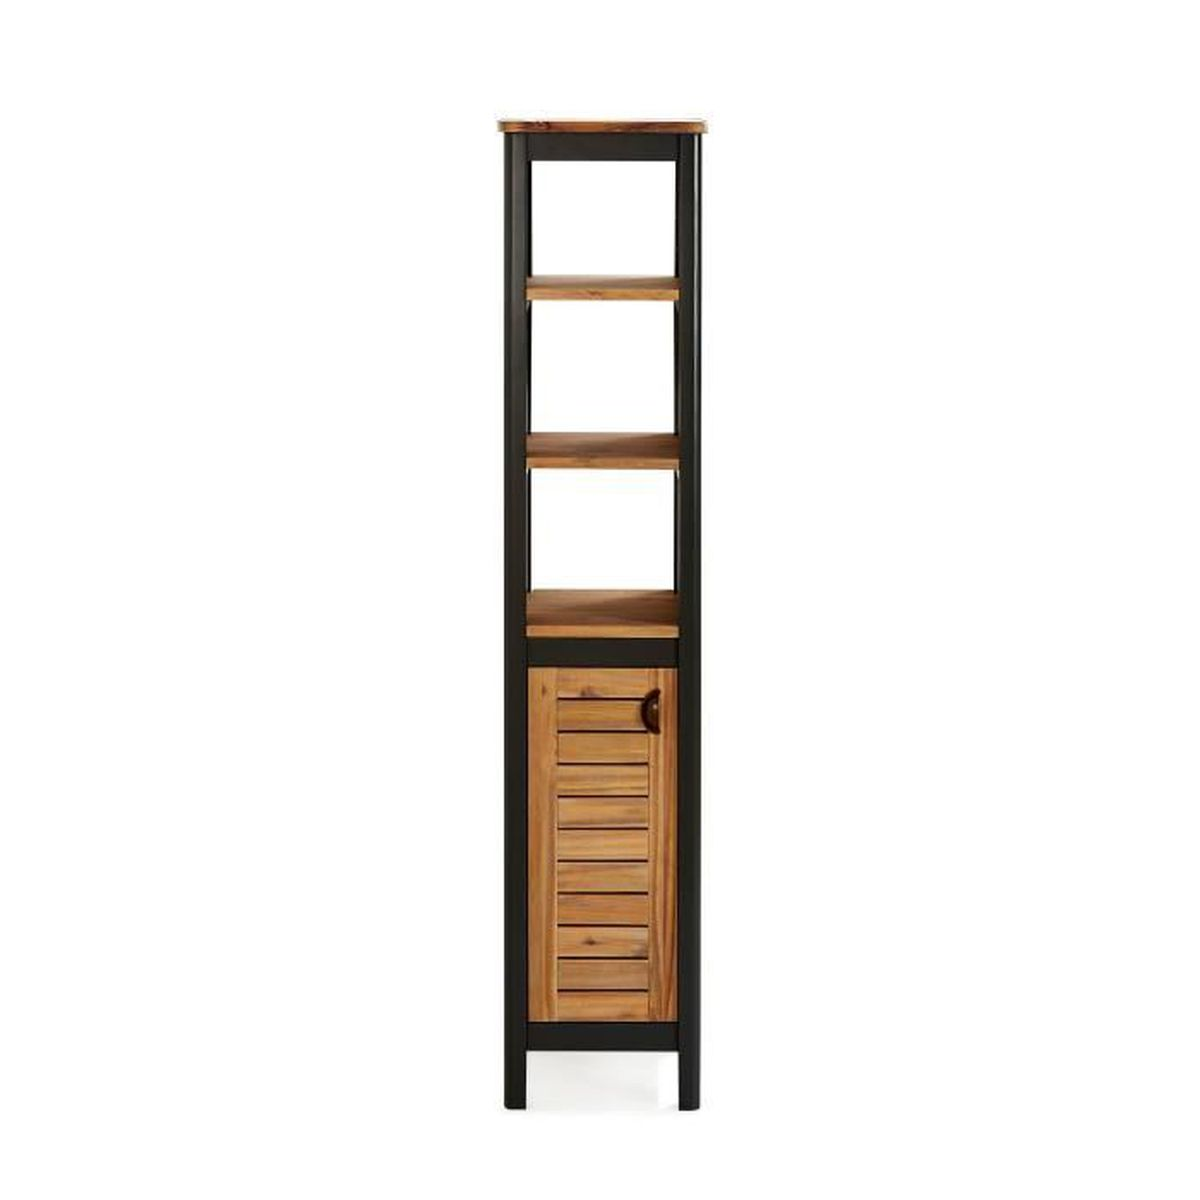 pitaya colonne de salle de bains en acacia massif 120cm. Black Bedroom Furniture Sets. Home Design Ideas